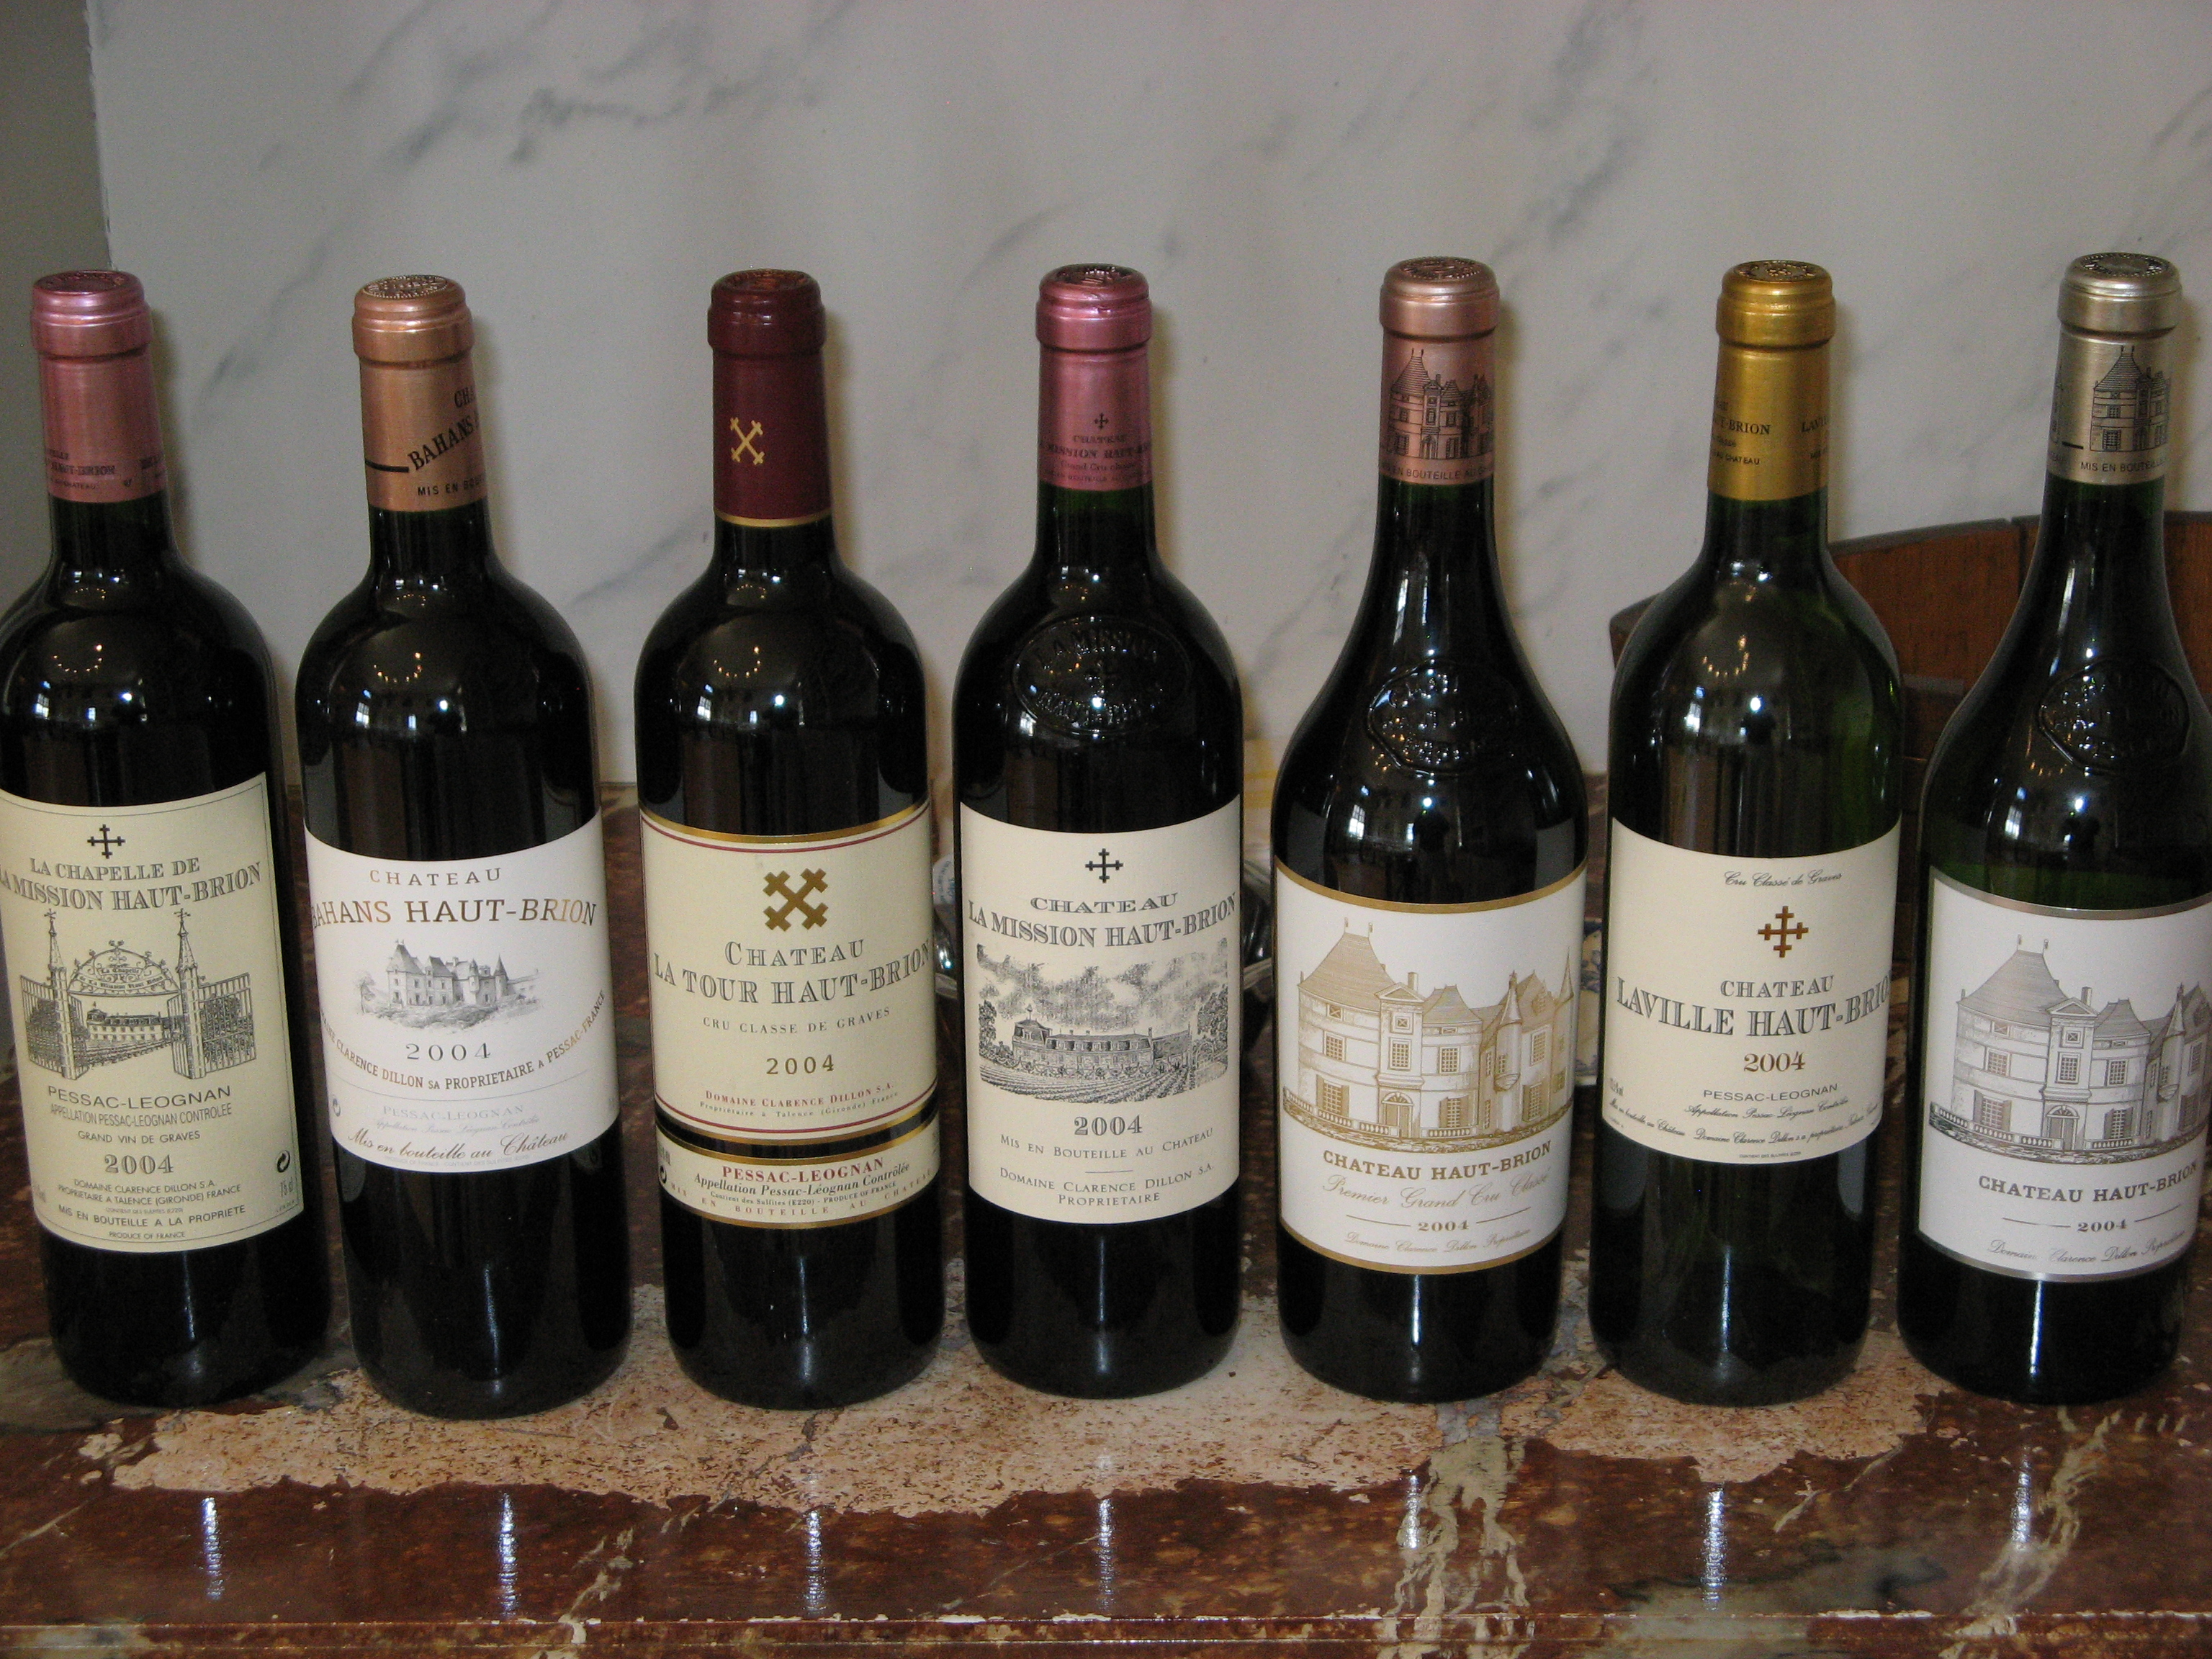 A wine appraisal performed on various bottles of vintage Chateau Haut Brion.